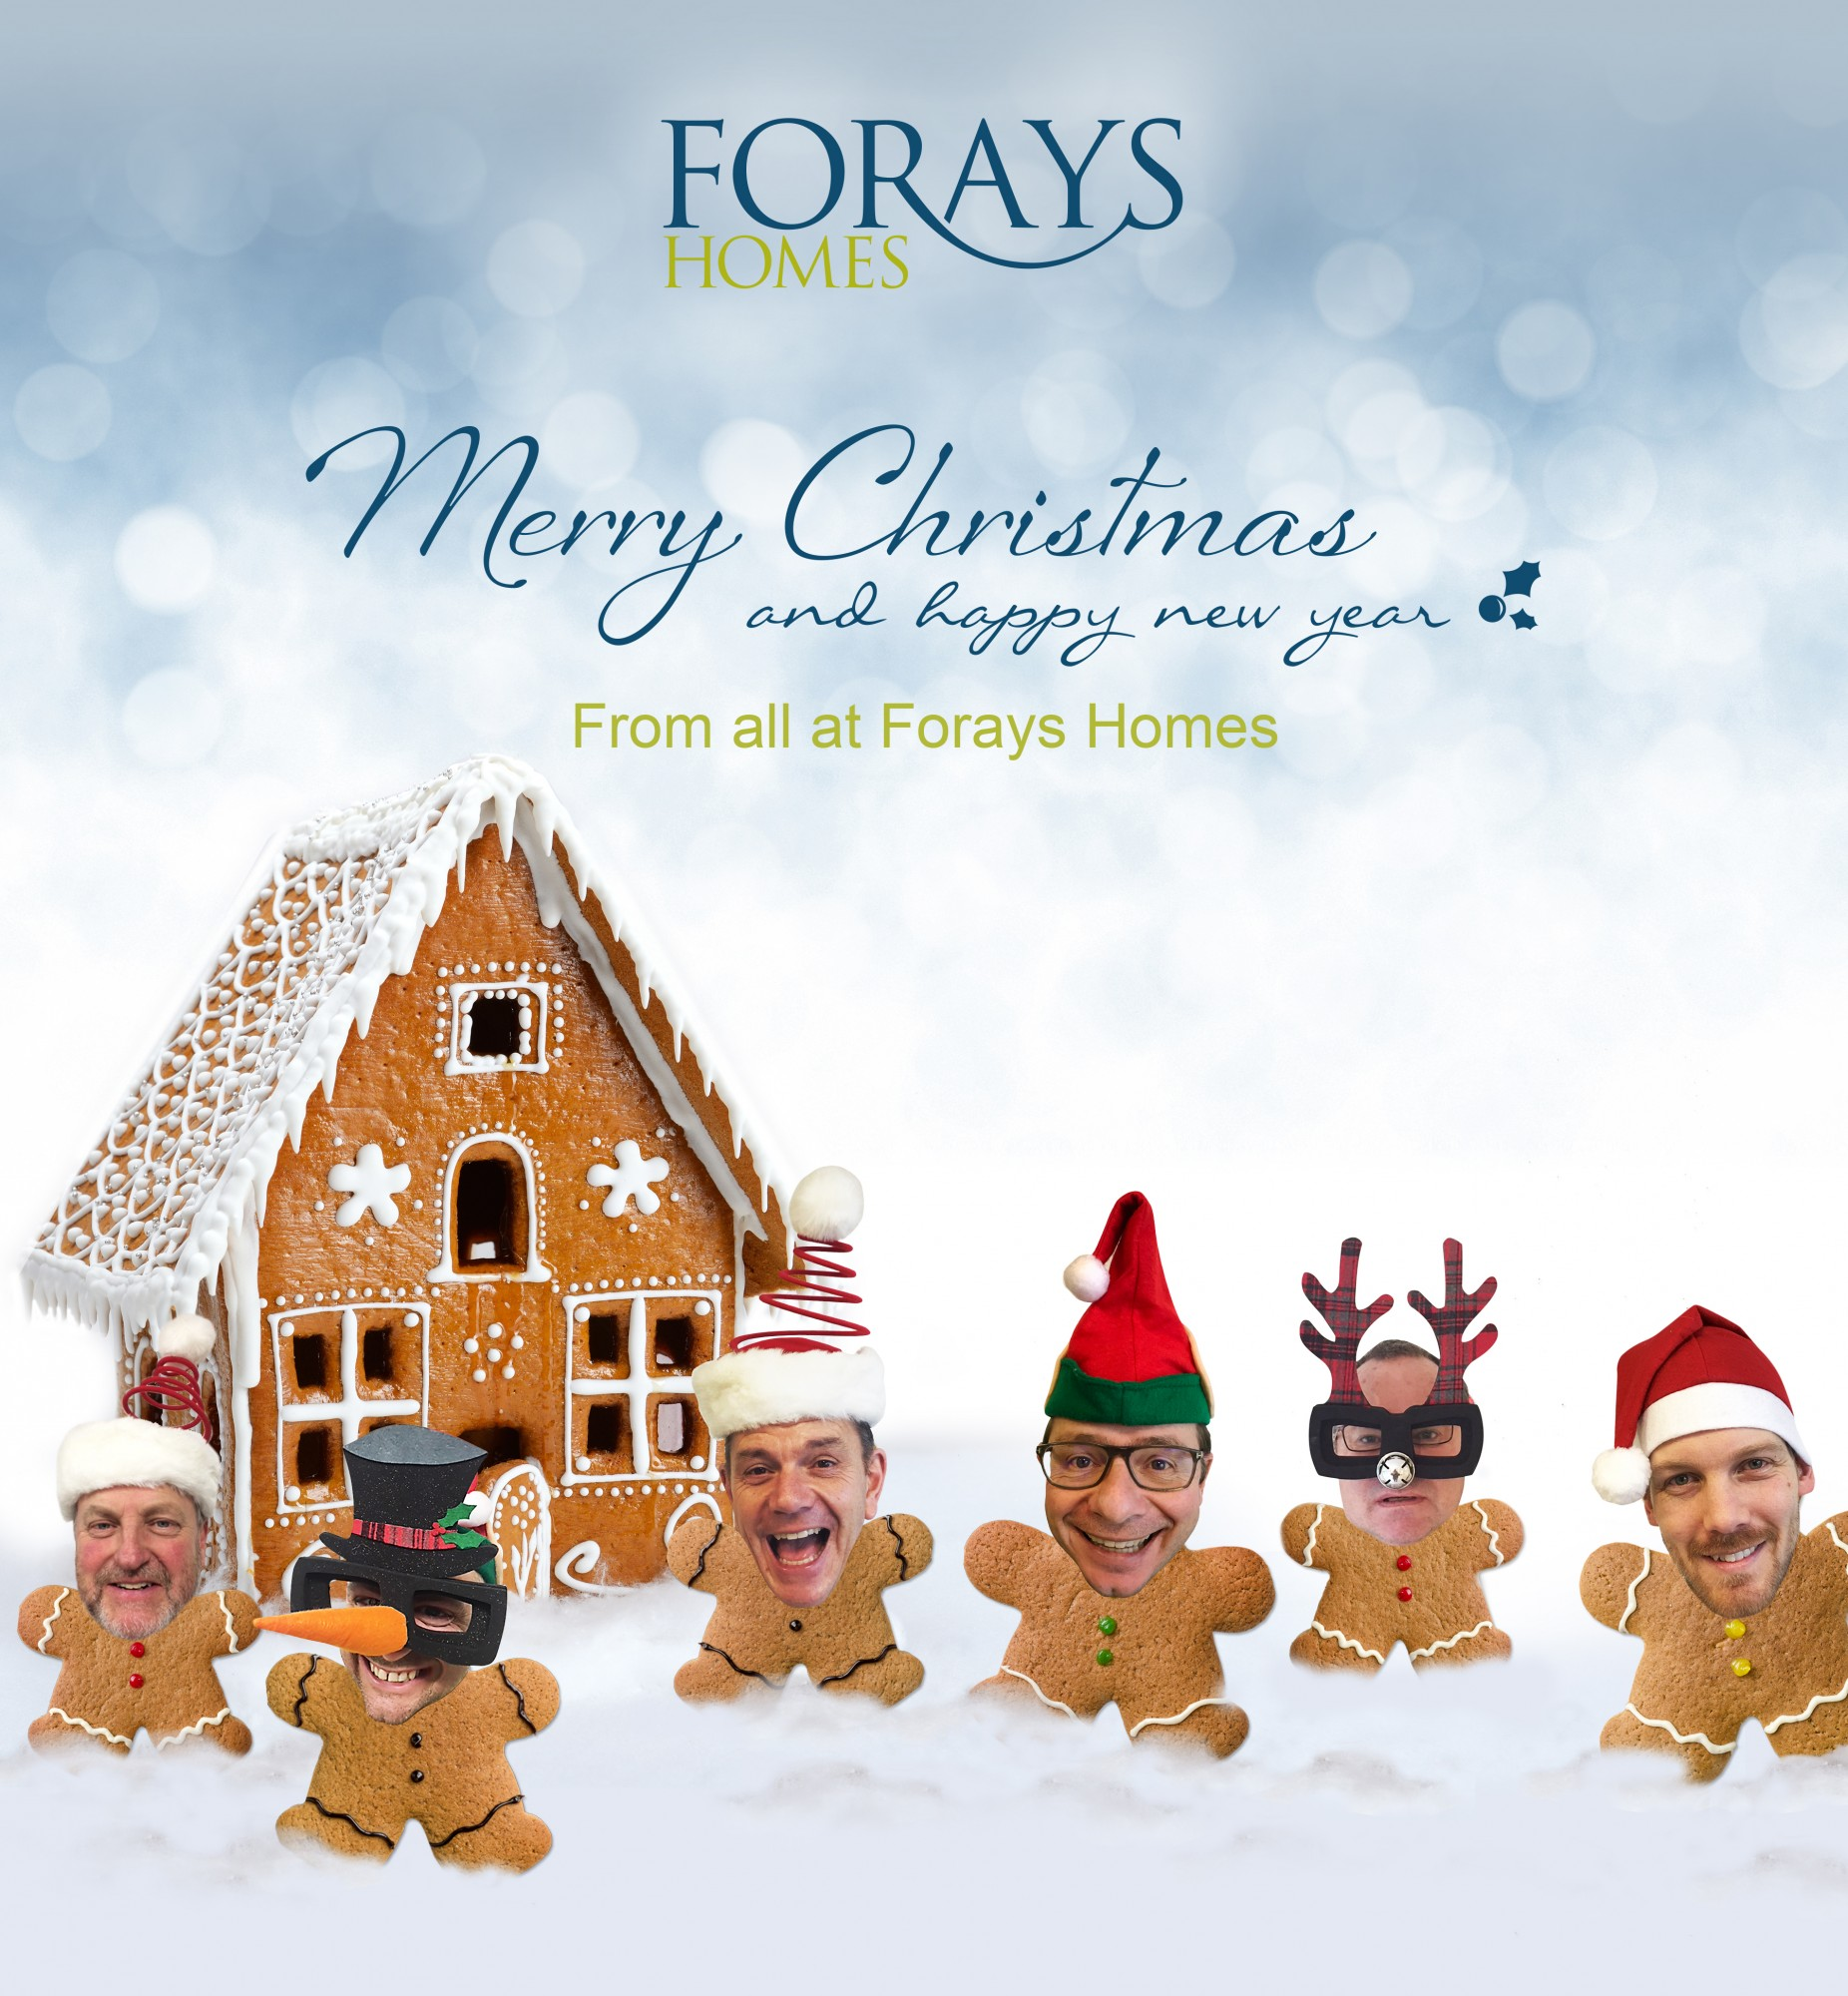 Merry Christmas and Happy New Year from all the team at Forays Homes